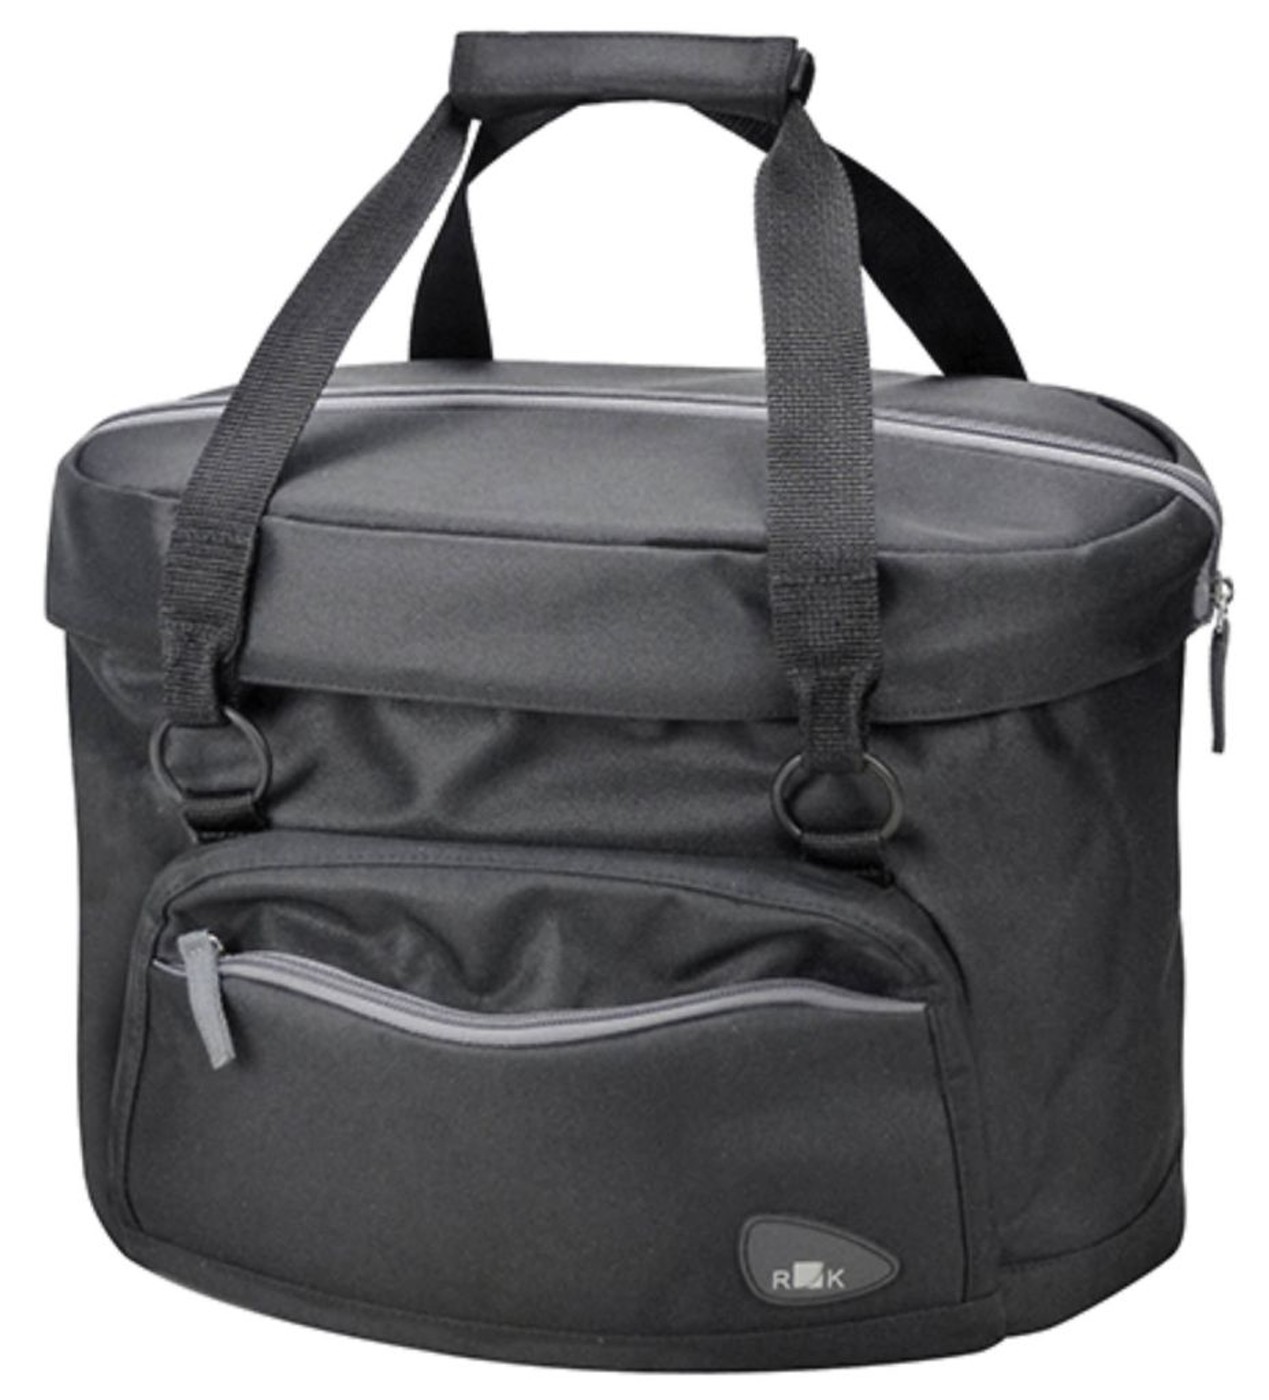 KLICKFIX Lenkertasche SHOPPER FASHION ohne Adapter